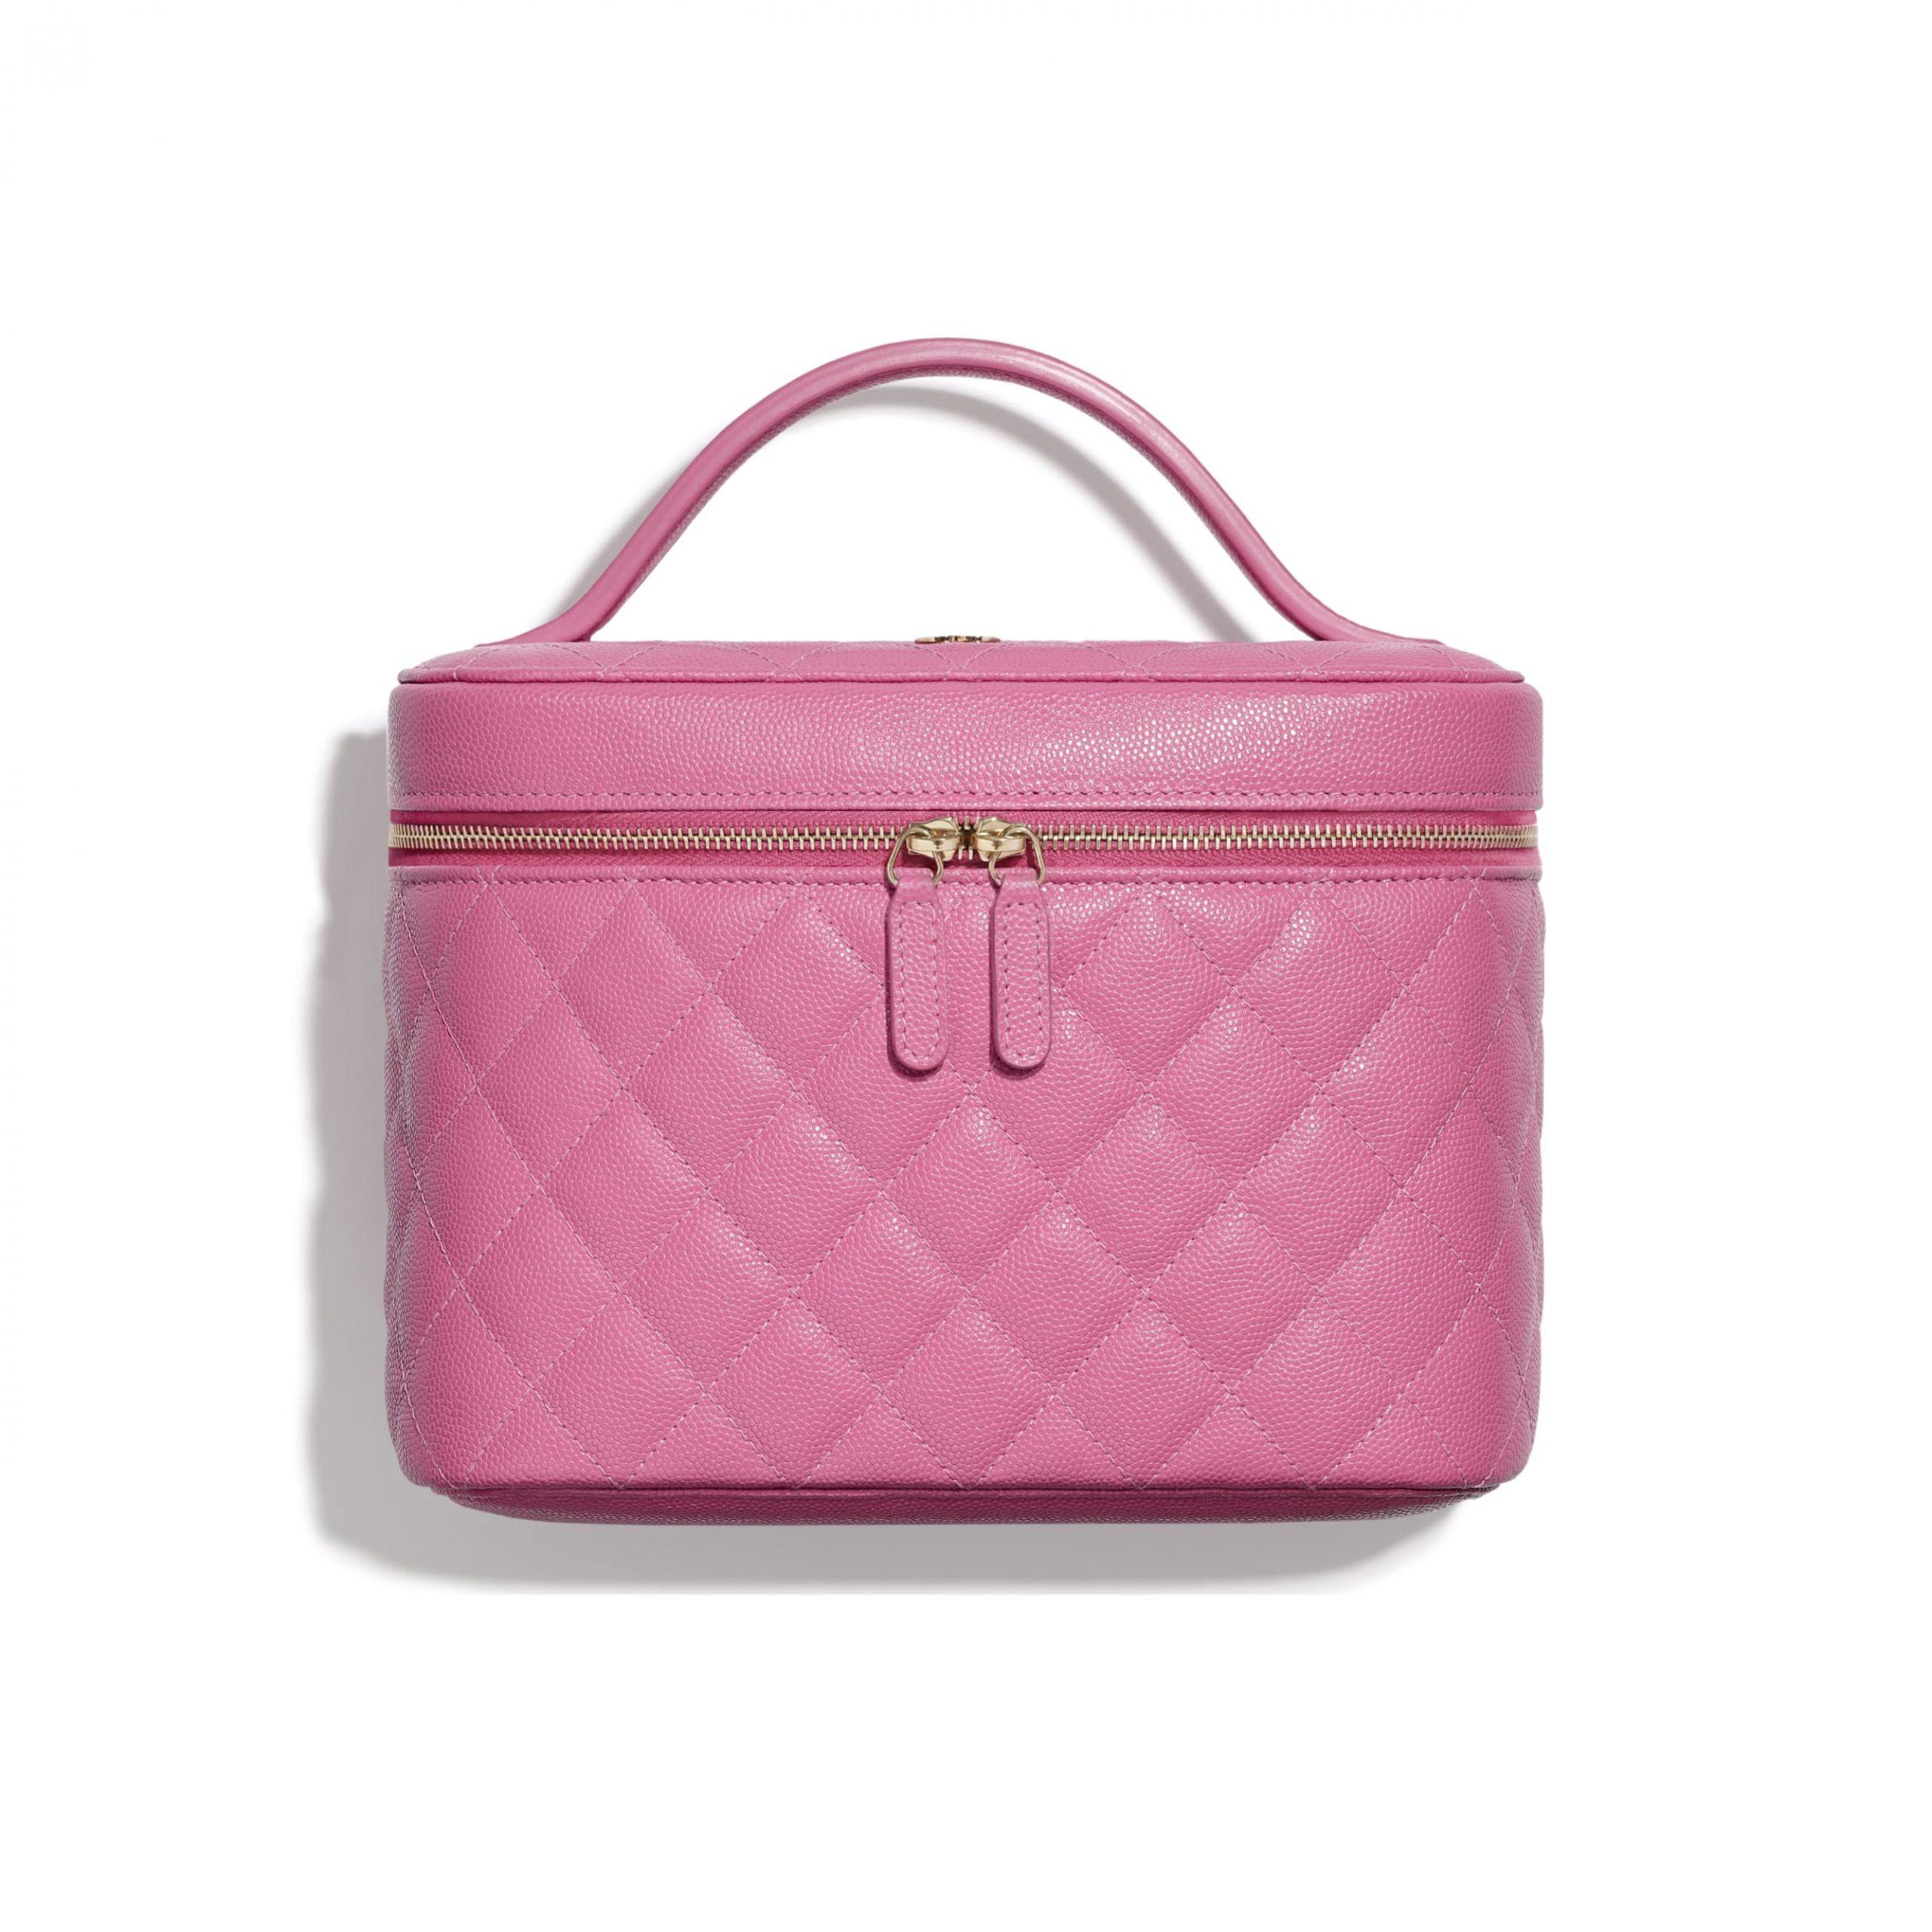 classic-vanity-pouch-pink-grained-calfskin-gold-tone-metal-grained-calfskin-gold-tone-metal-packshot-default-a80913y333525b648-8824082694174.jpg